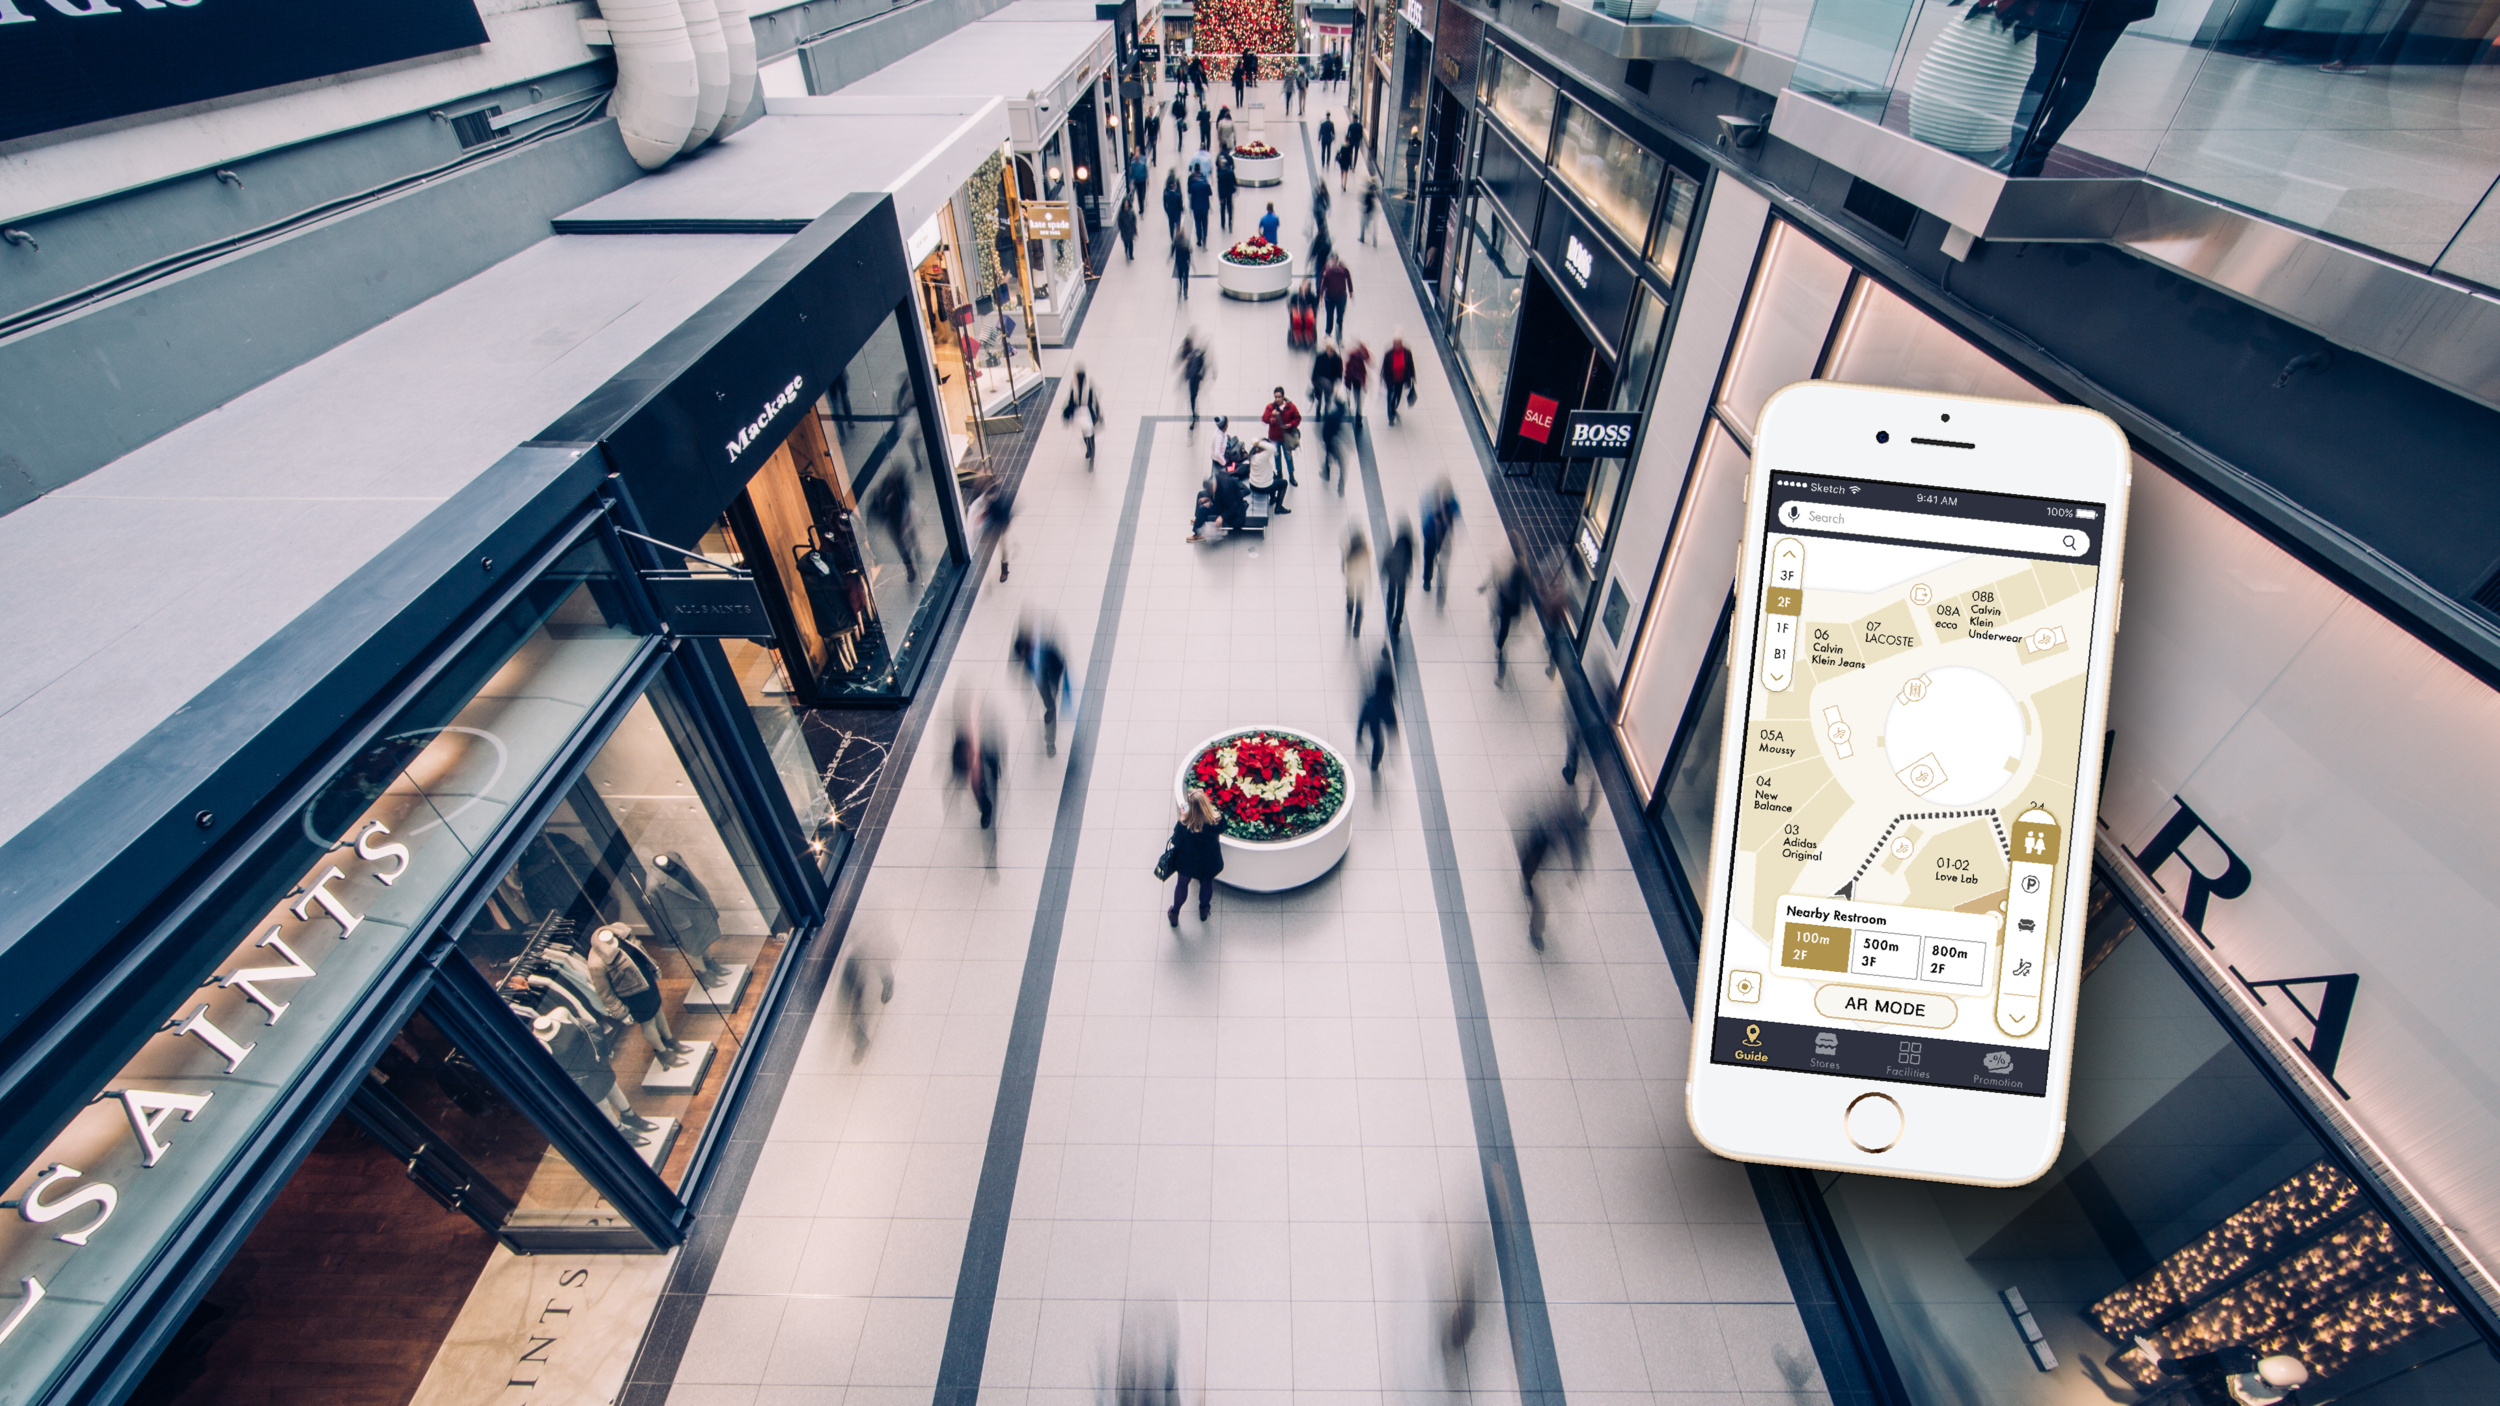 Super Grand Mall - A mobile application that will provide real-time assistance services to visitors of large-scale shopping centers, including directions and promotional information, tailored to their in-the-moment needs.